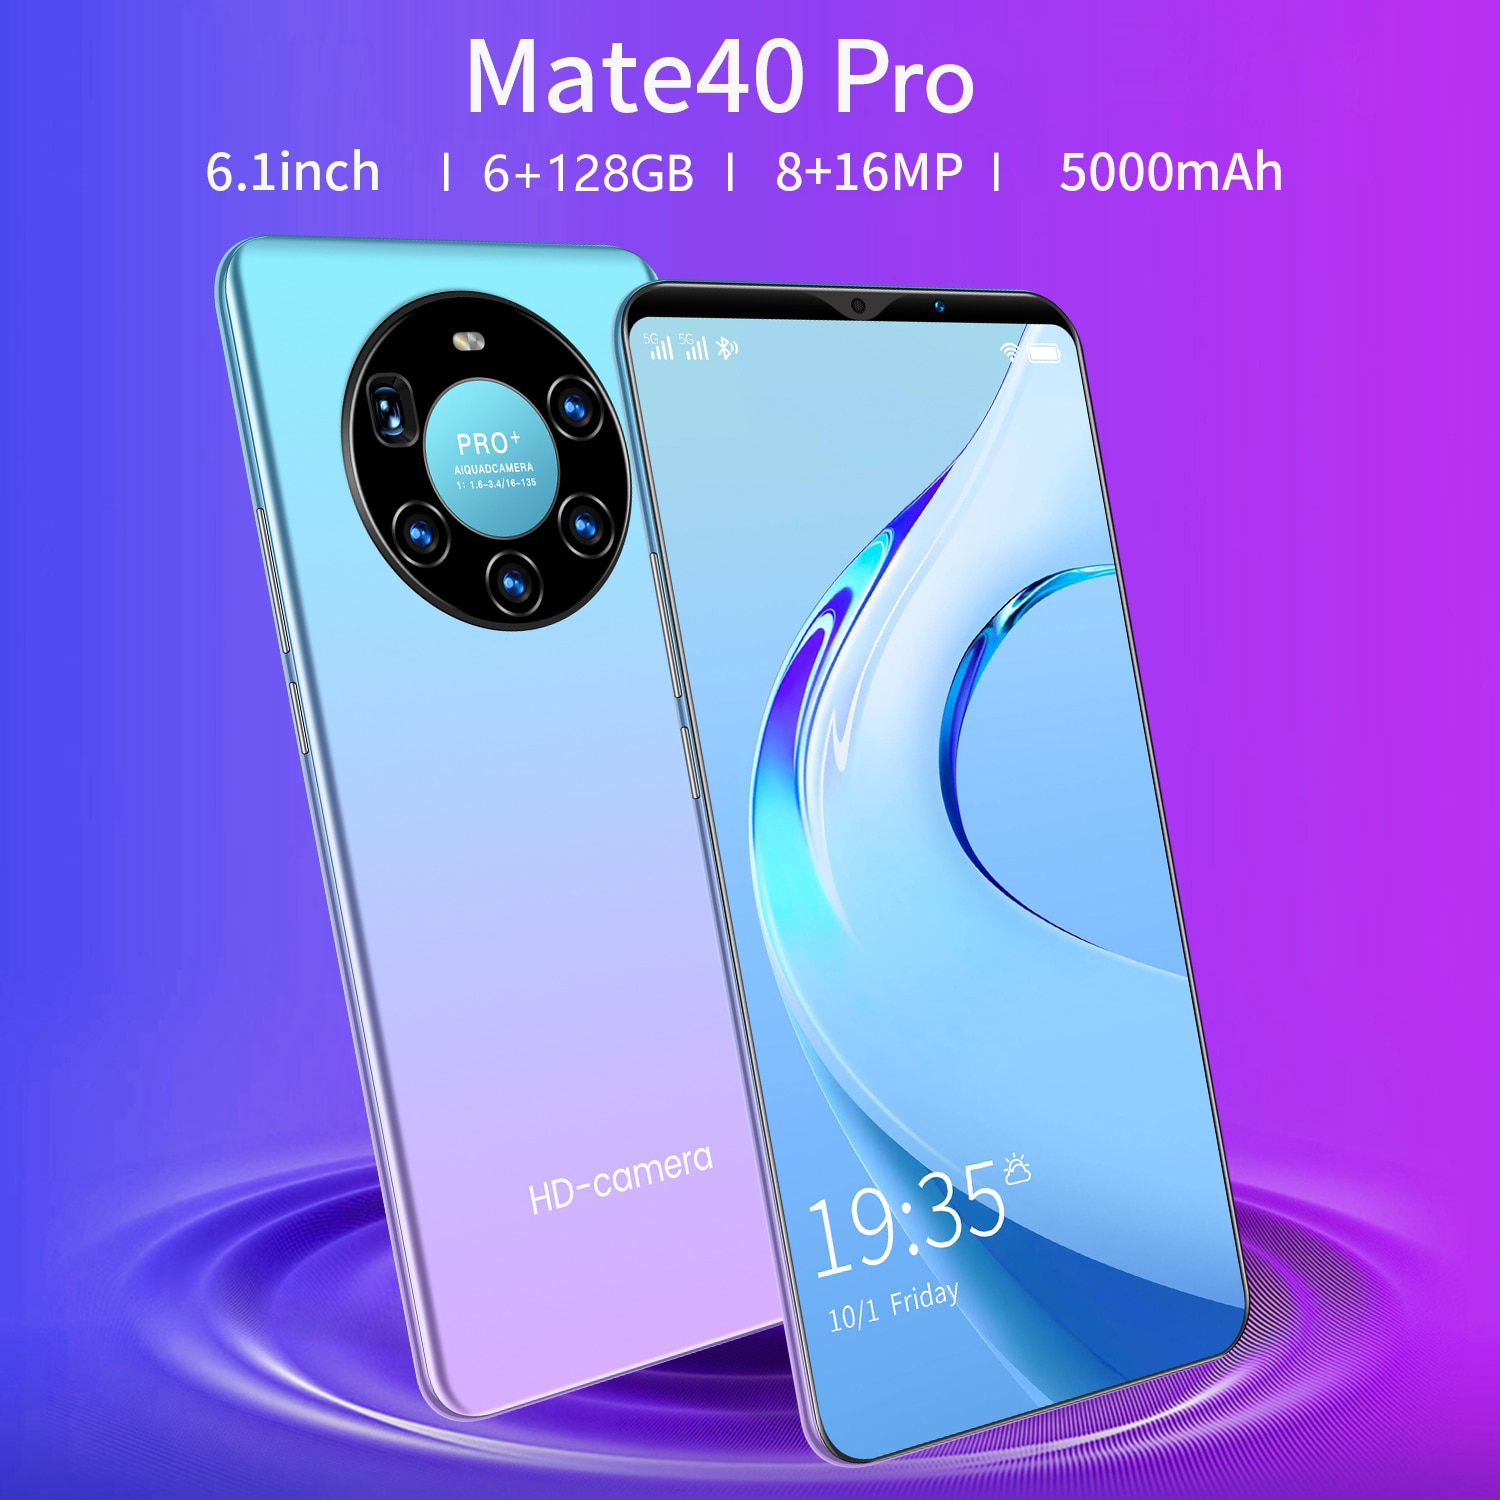 Global Version Mate40 Pro 6.1-inch Smartphone 8GB 256GB Android 10 5000mAh Unlocked Google Play WiFi GPS 5G Mobilephone